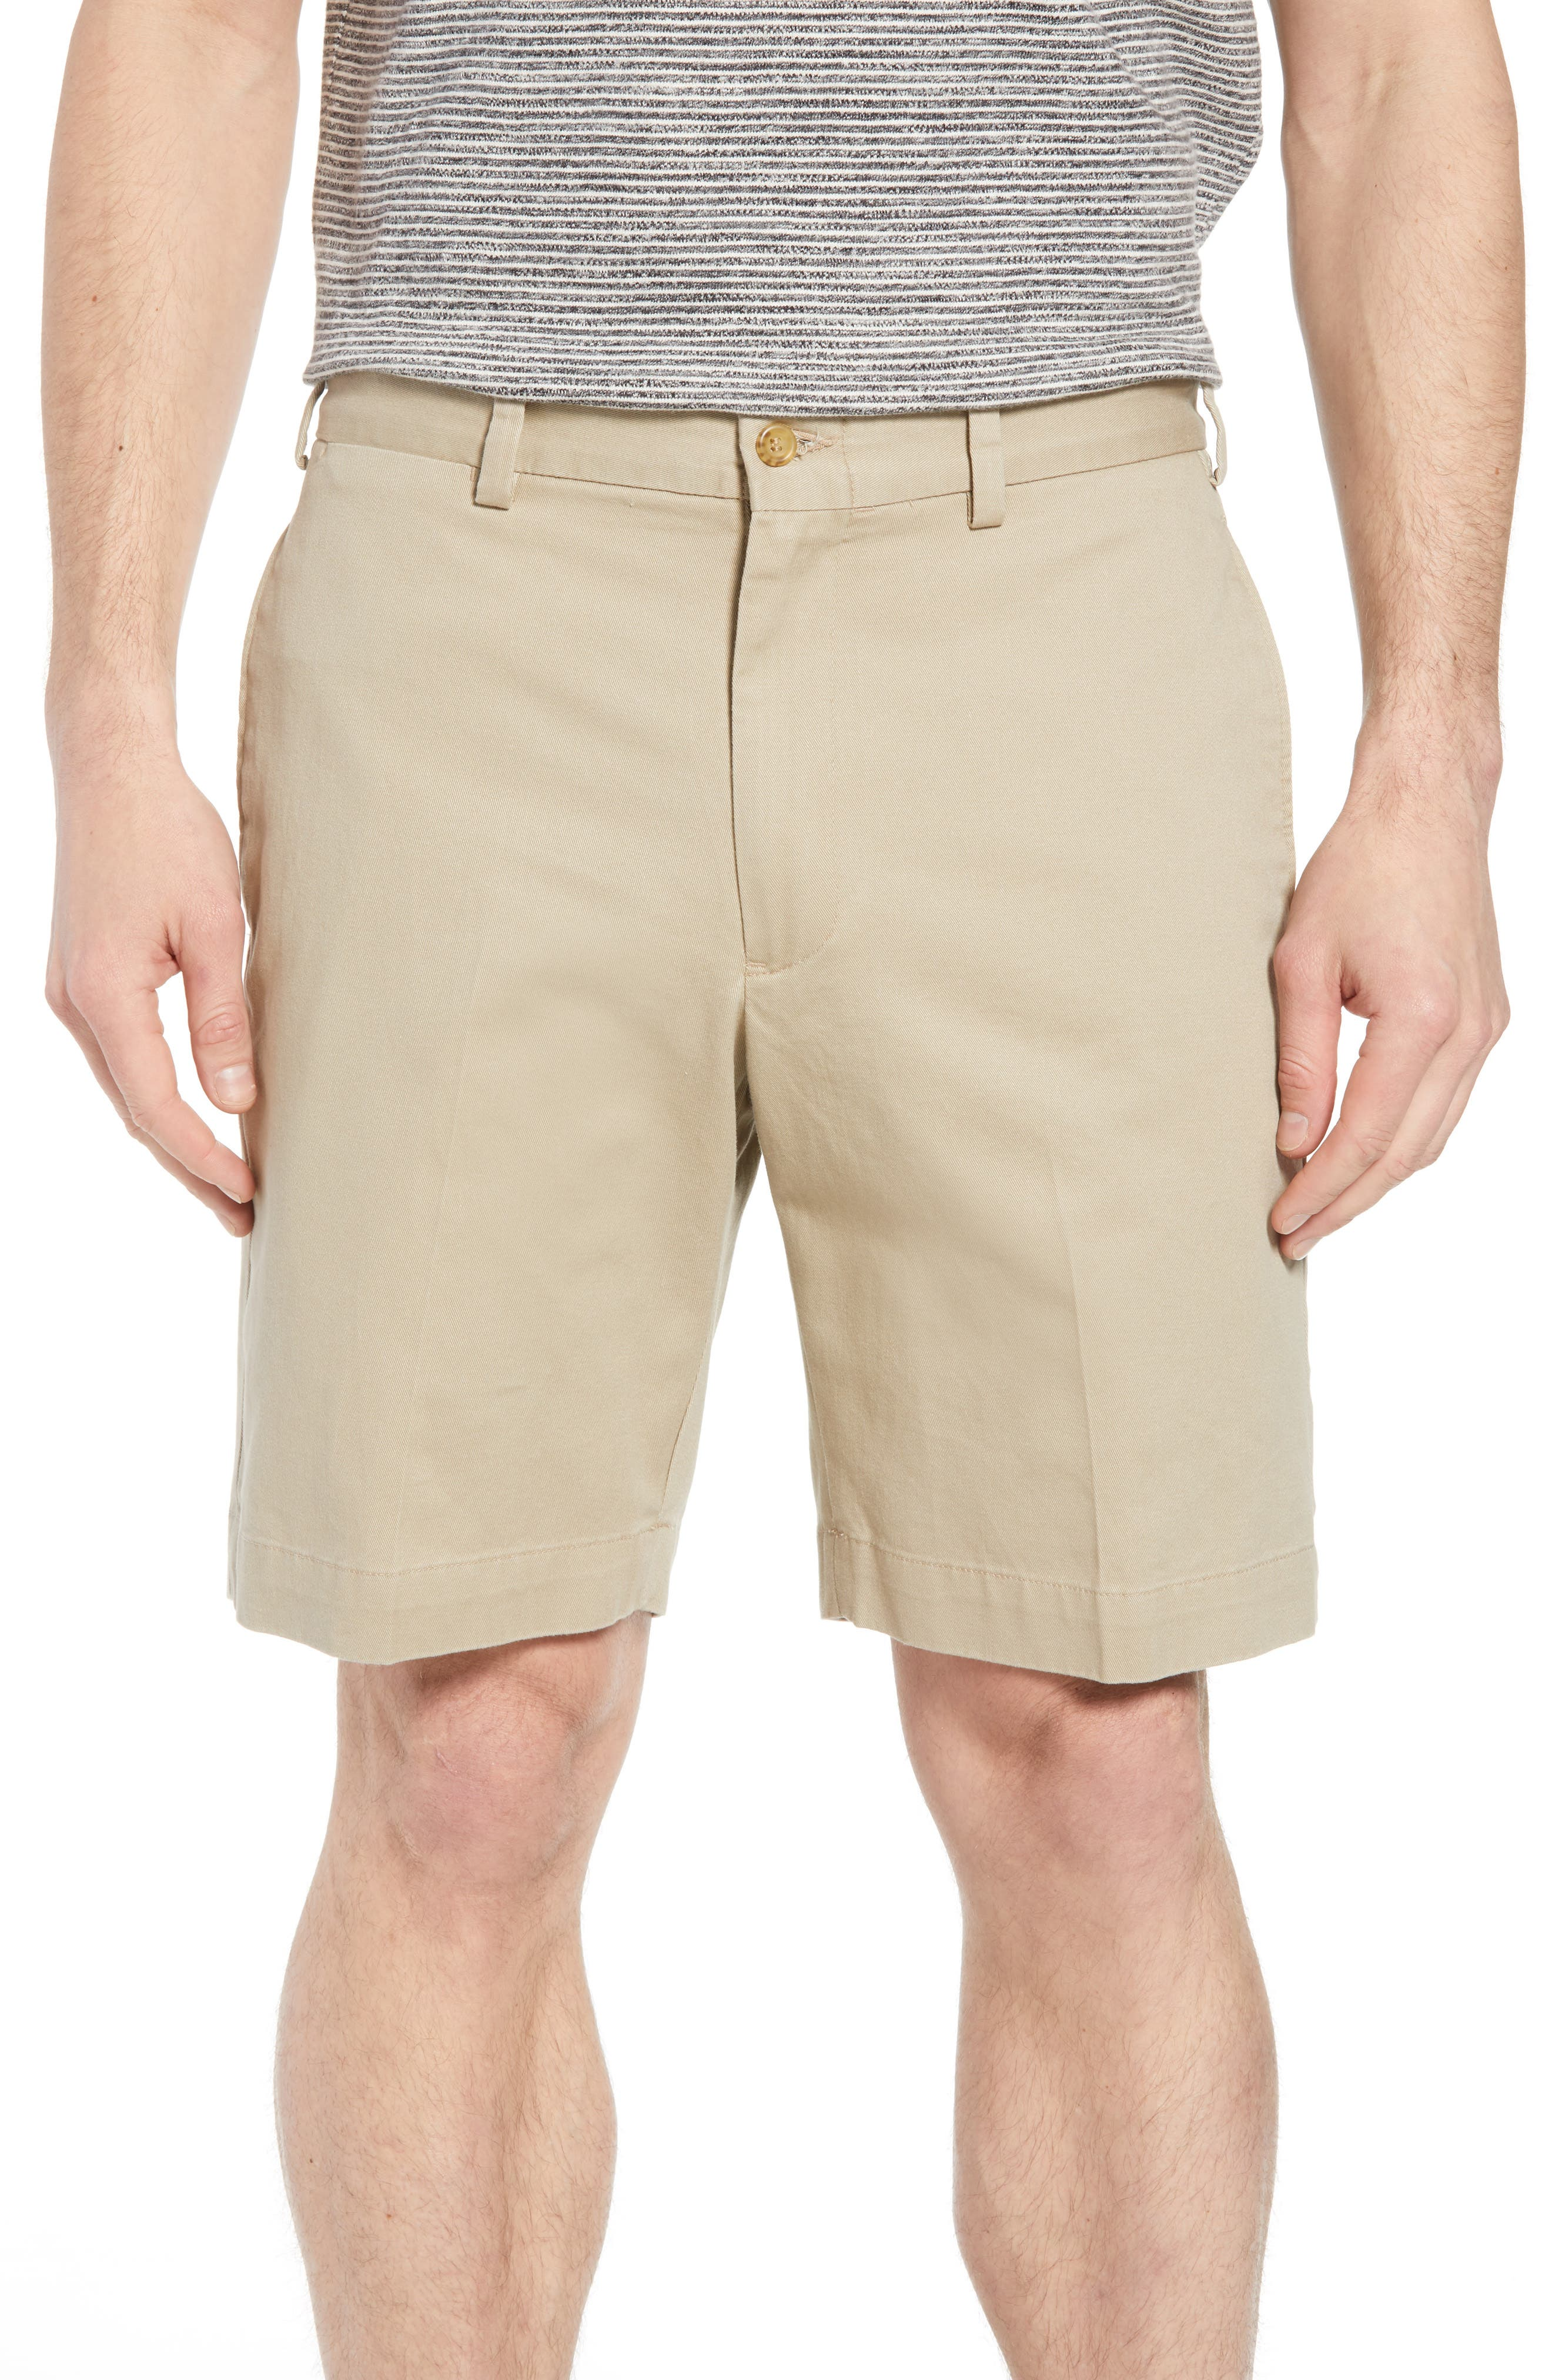 M2 Classic Fit Vintage Twill Flat Front Shorts,                         Main,                         color, Khaki